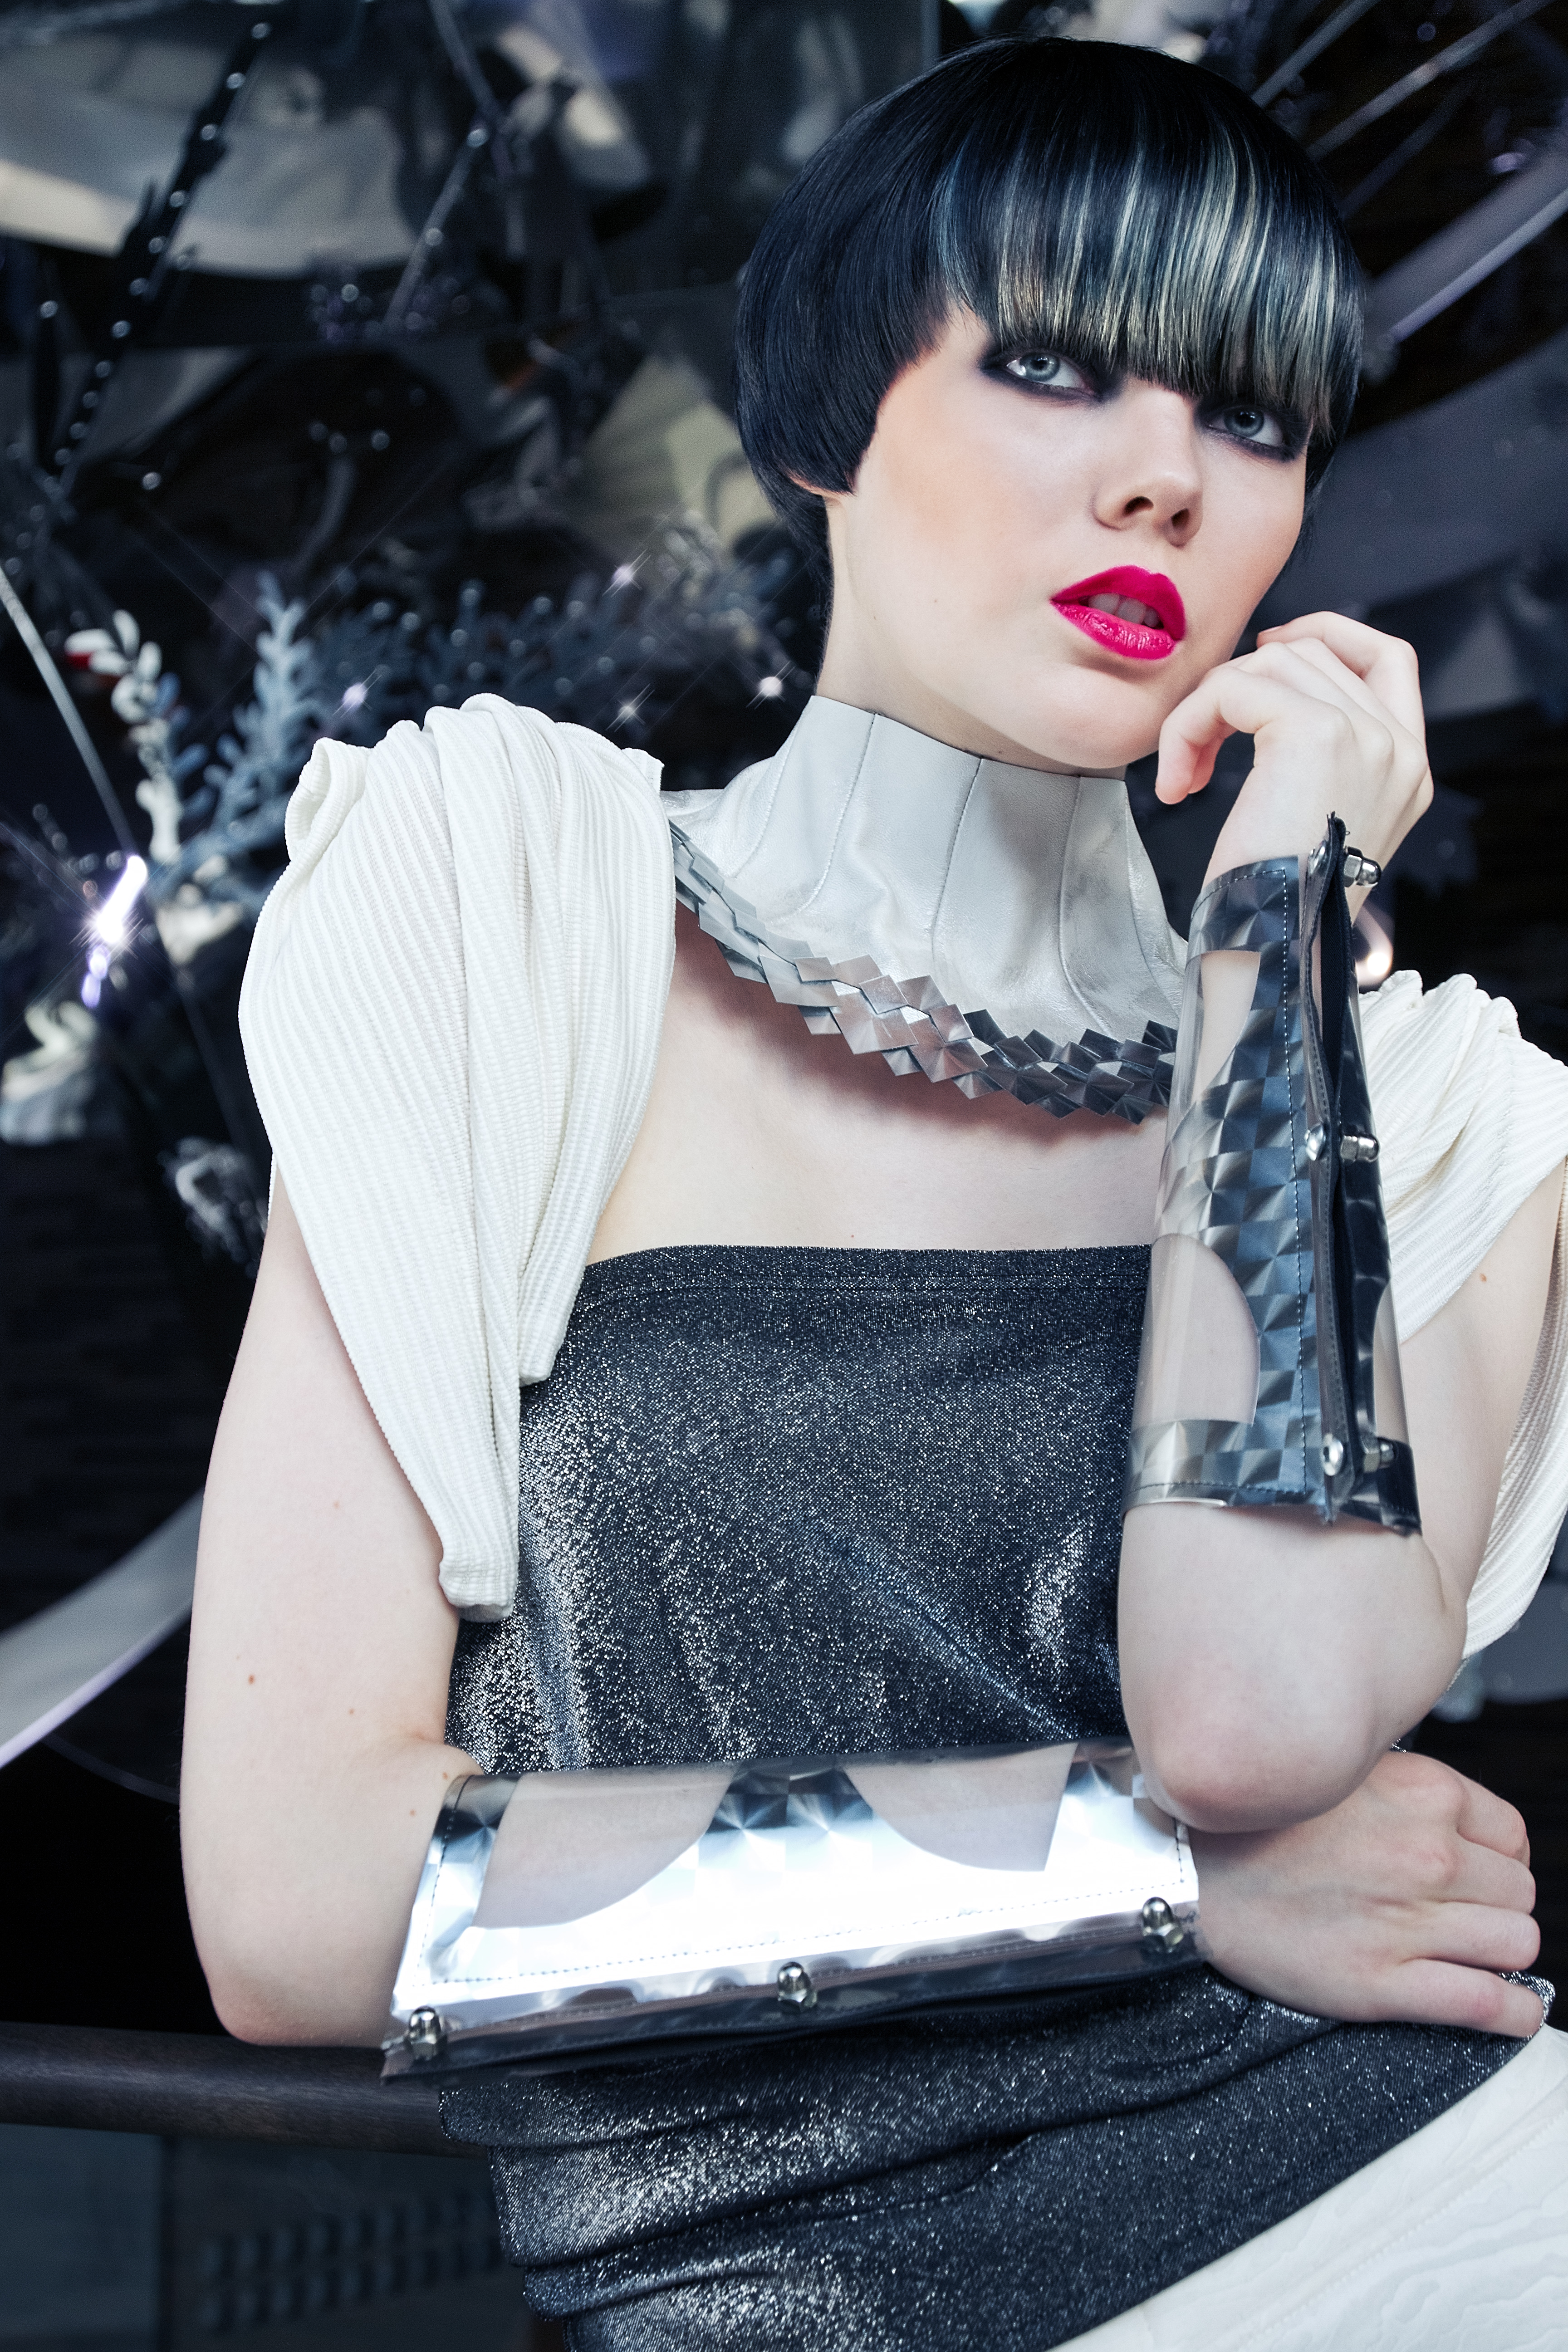 photoshoot Intercoiffure Finland style Northern Lights, styling and acc. Susanoo